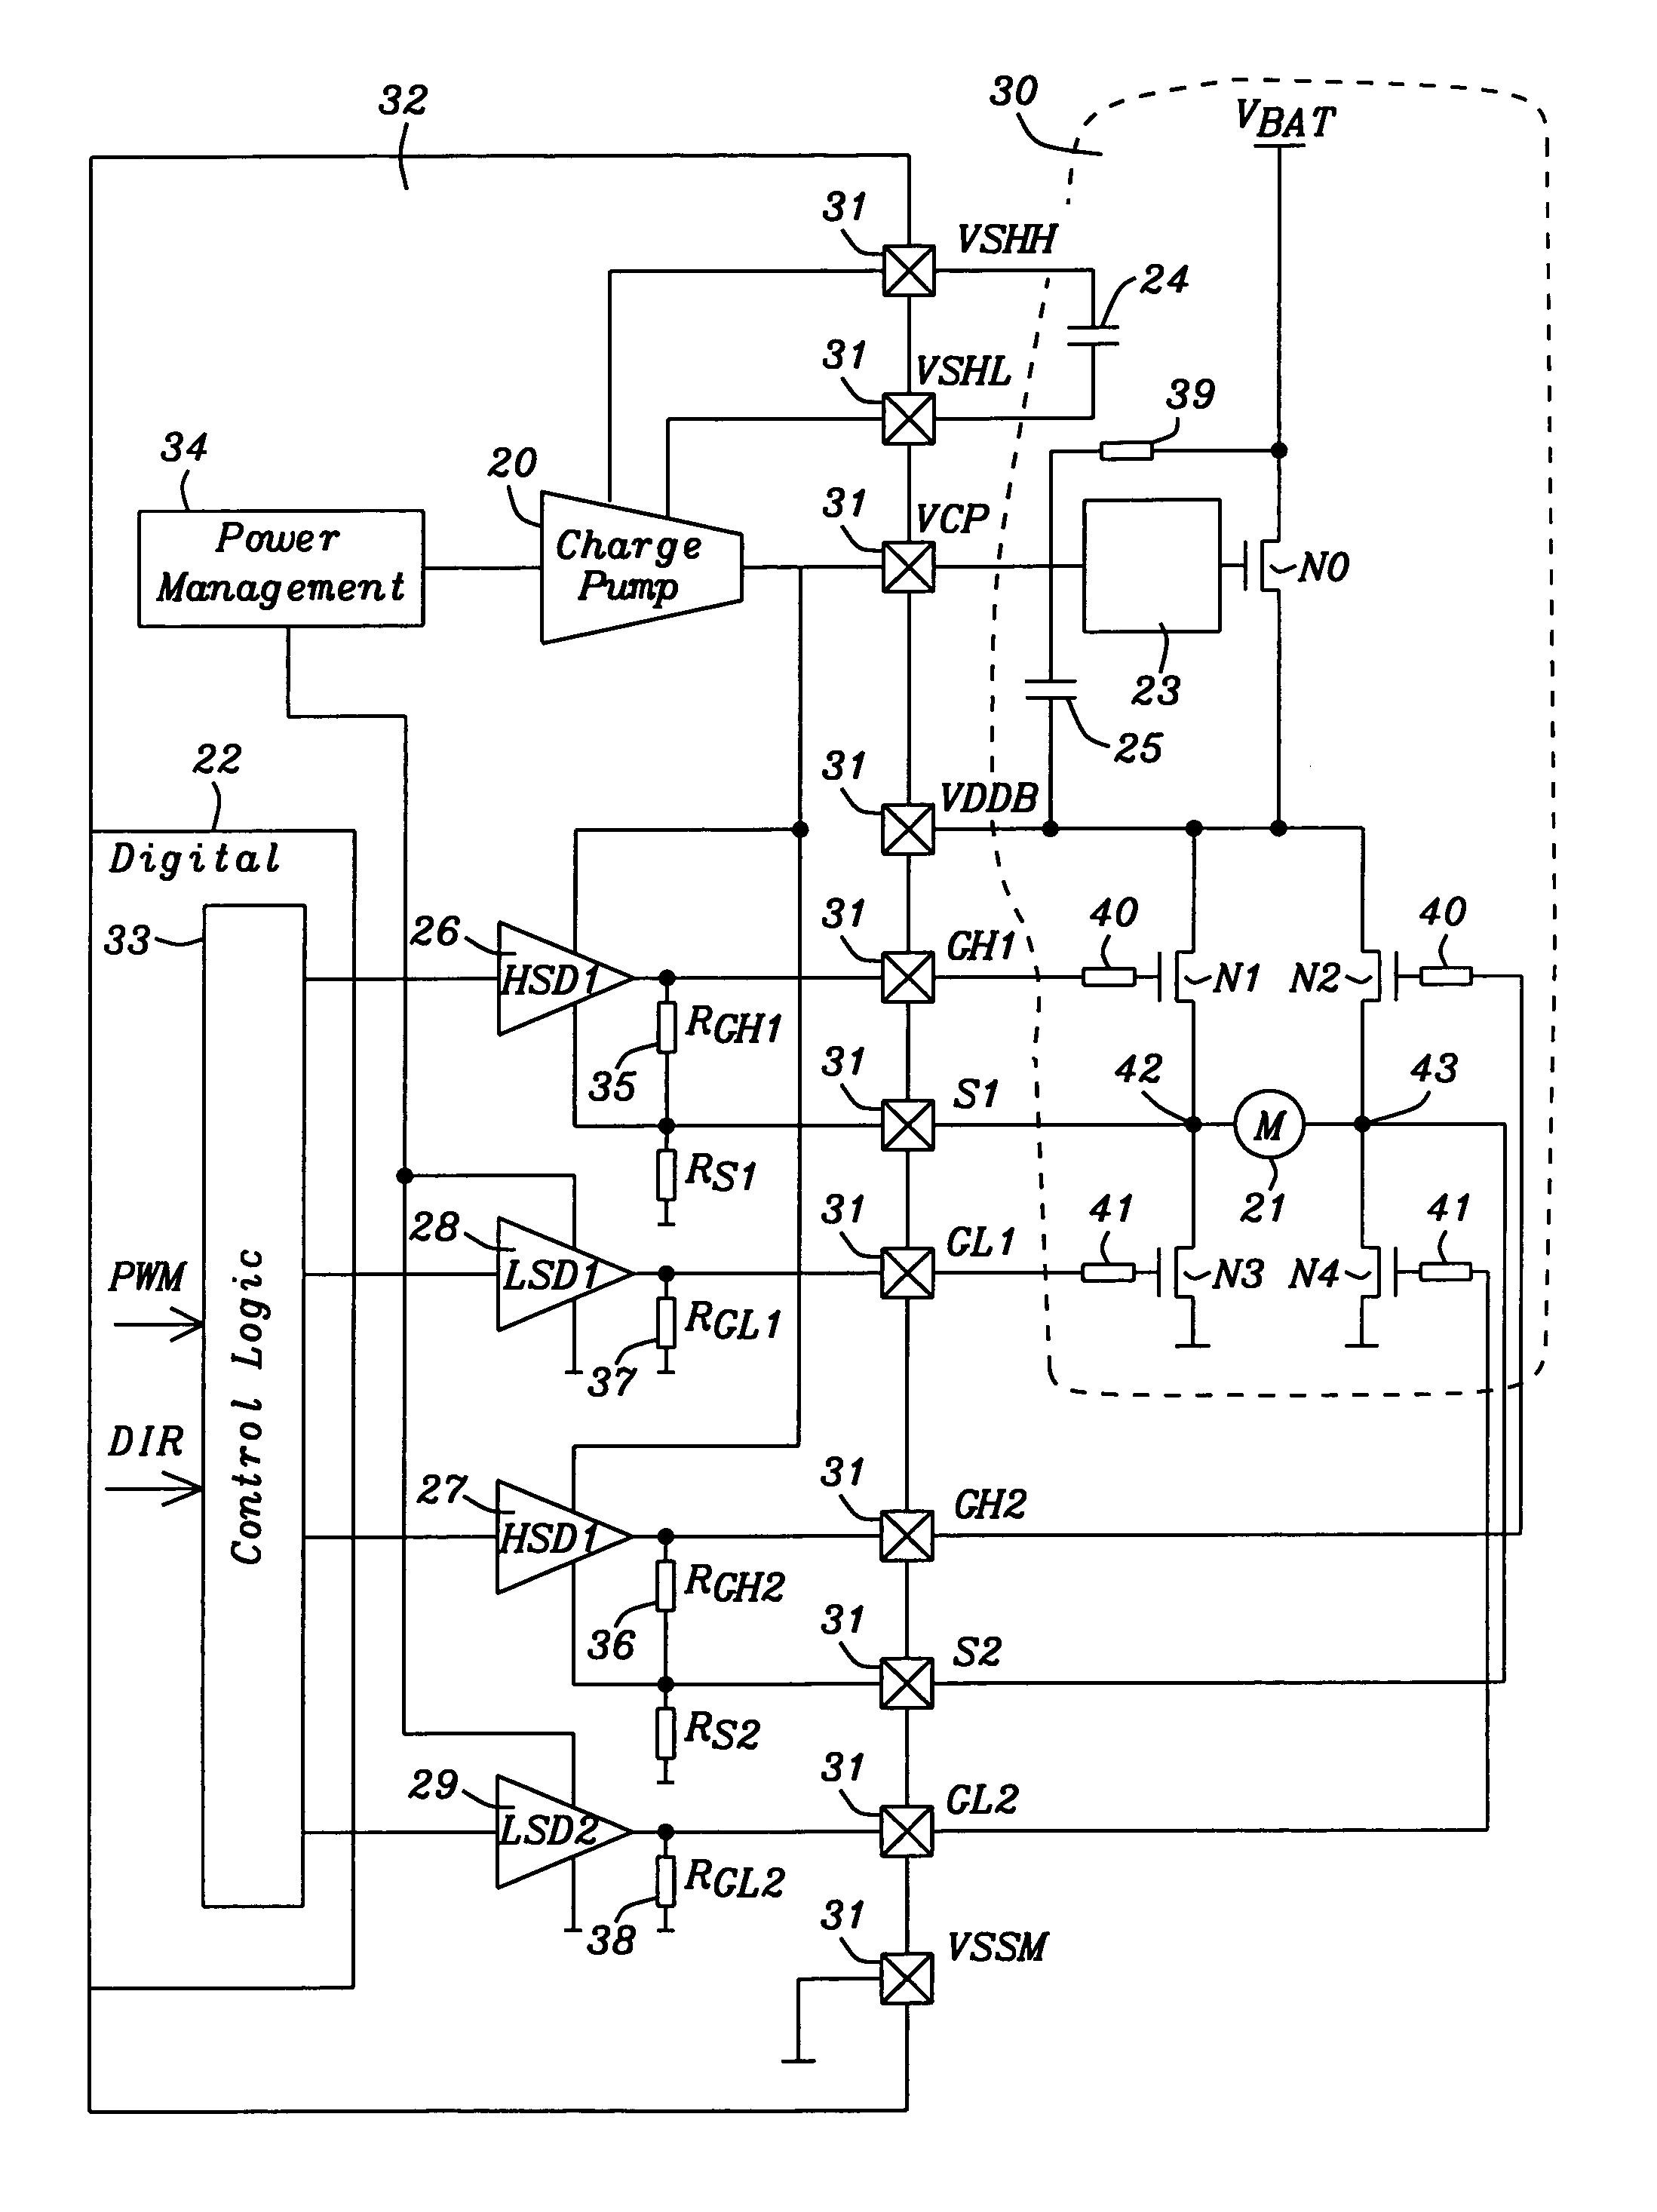 Analytics For Us Patent No 6977533 32v H Bridge Driver With Cmos Double Diffused Mos Dmos The Motor Is Connected To Battery Supply By An Additional N Channel Transistor Implement A Reverse Protection